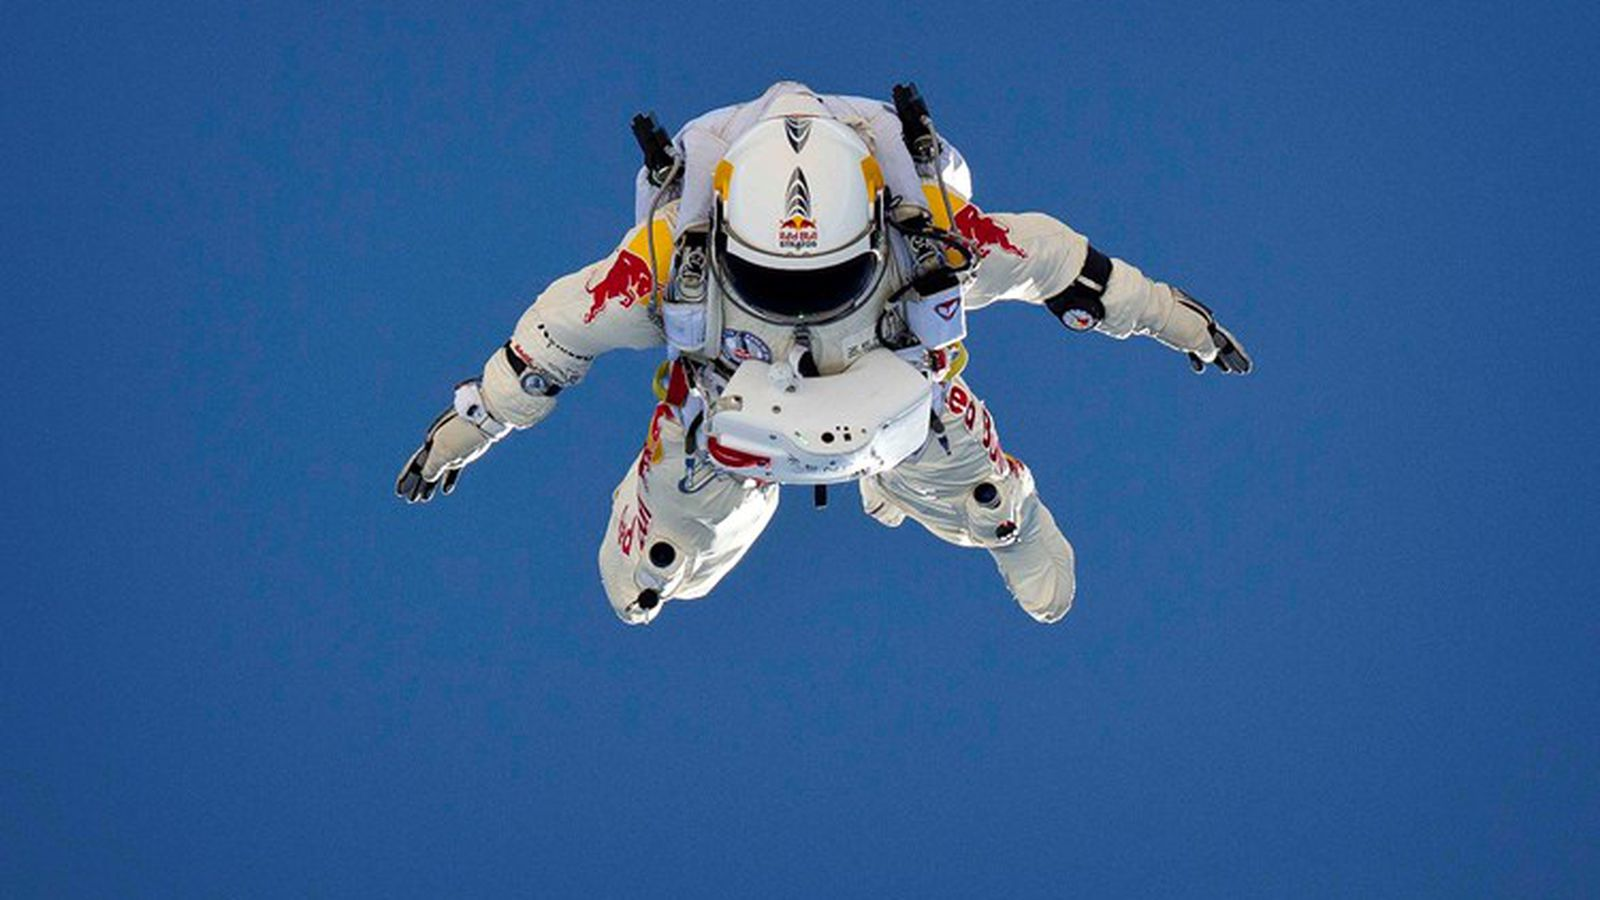 Red Bull Skydive >> Felix Baumgartner to attempt world's first supersonic free fall tomorrow | The Verge